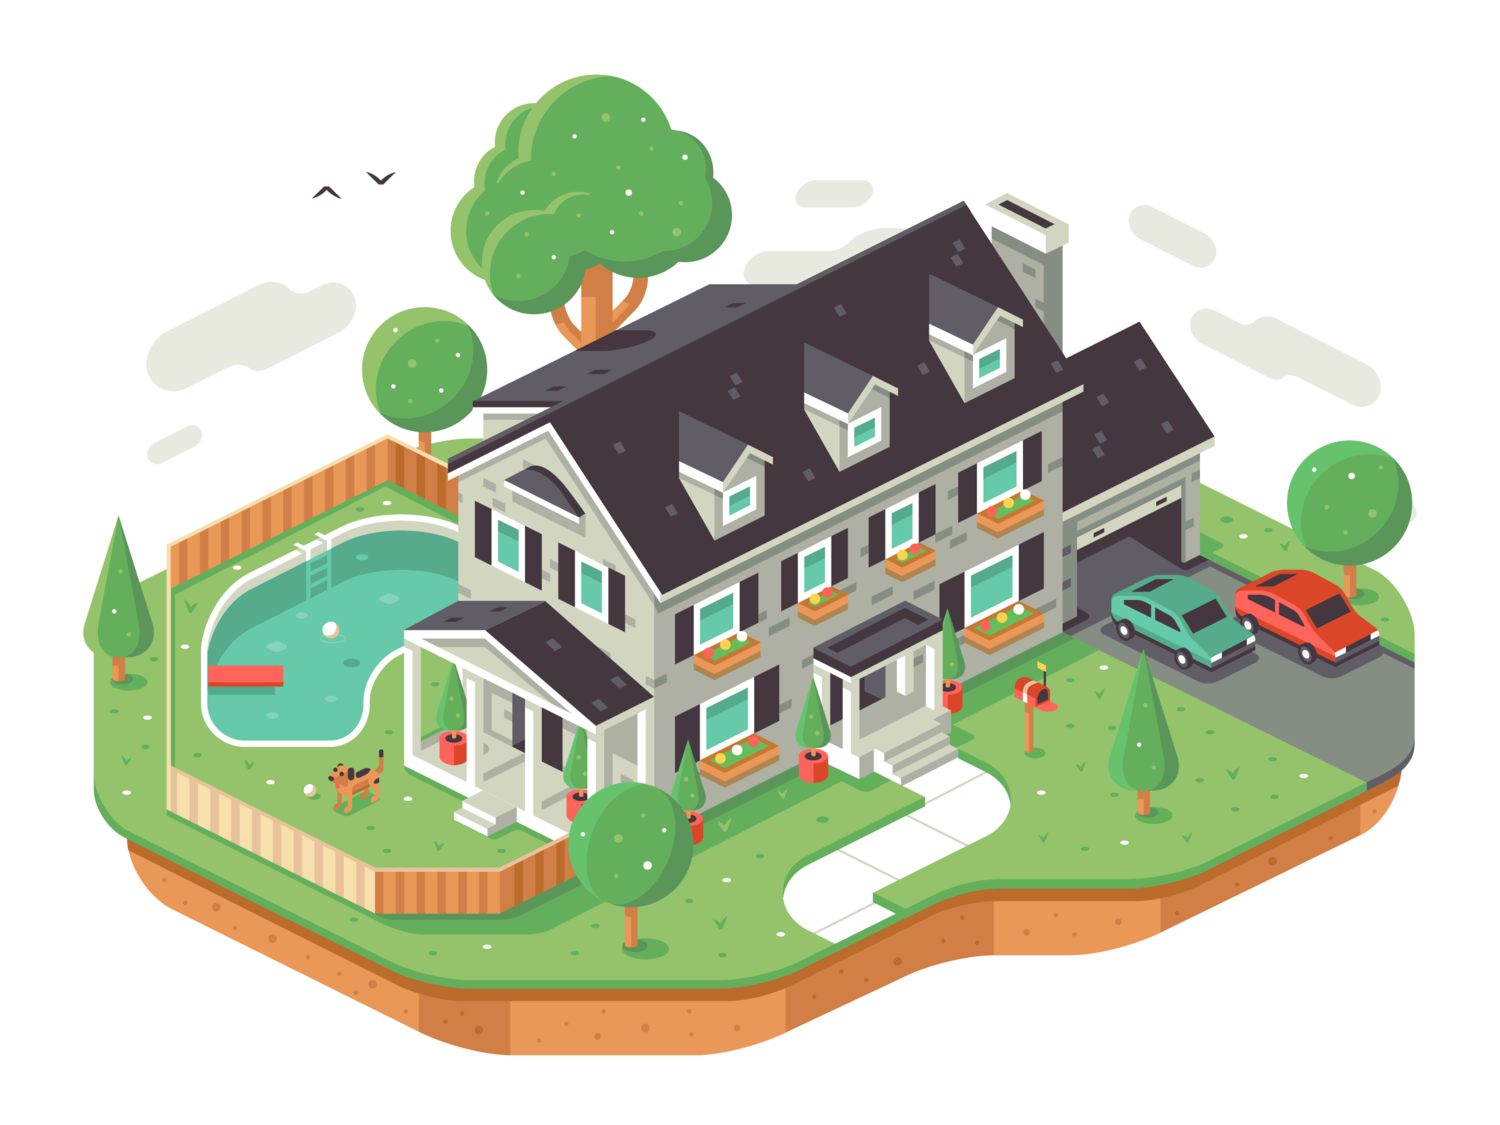 Isometric House Design for Hinged Service - Illustration by Matt Anderson